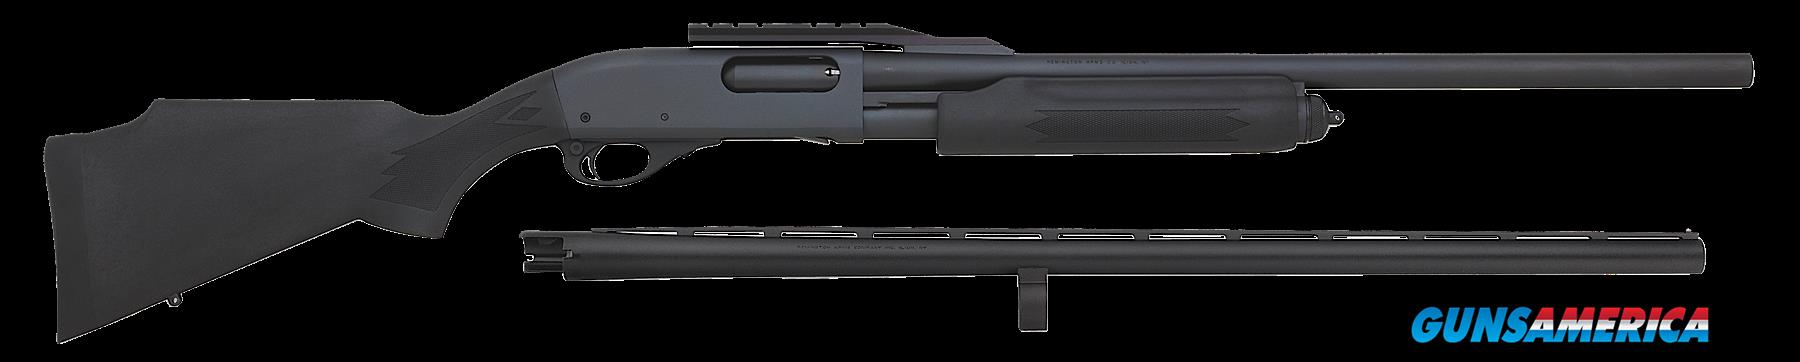 "Remington Firearms 81280 870 Express Combo Pump 12 Gauge 28""/23"" 4+1 Black Synthetic Stock Blued  Guns > Rifles > R Misc Rifles"